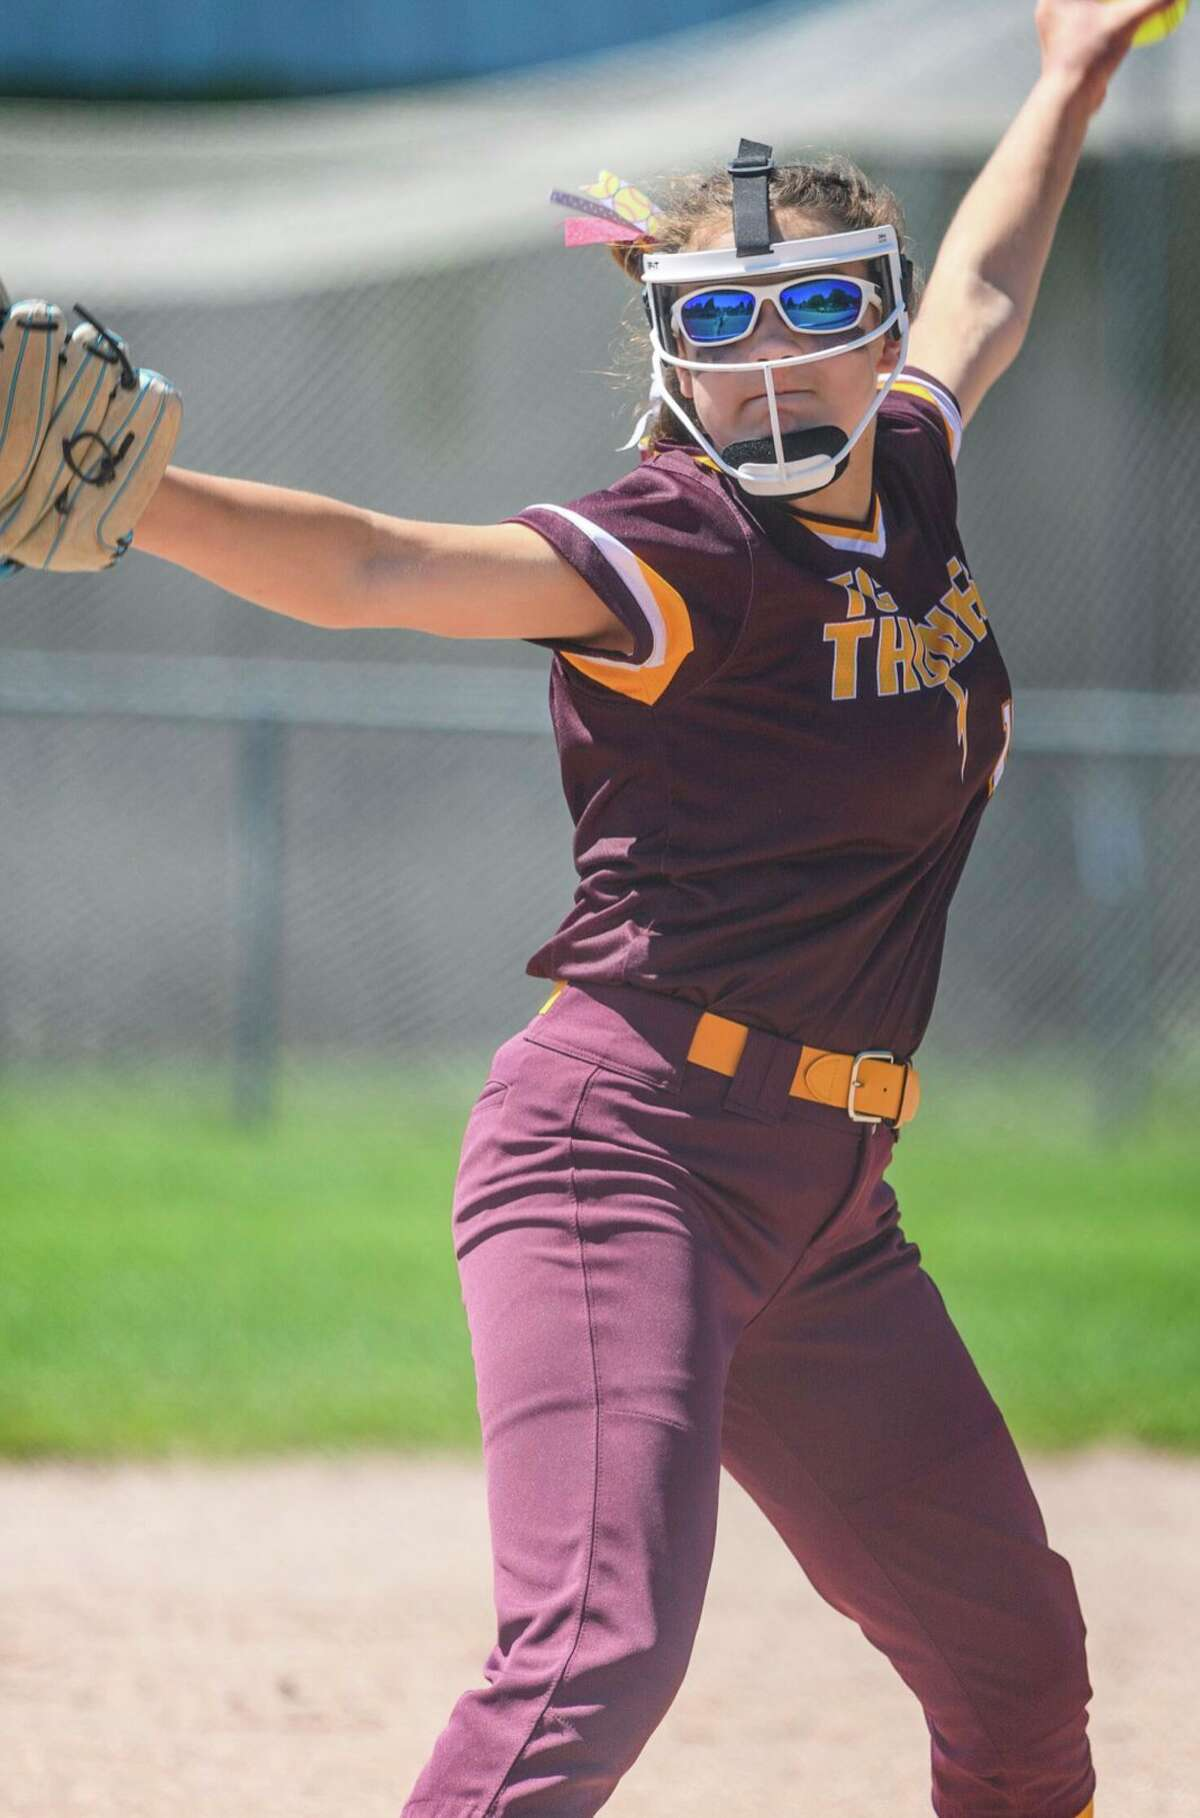 Chippewa Hills' Ella Newman delivers a pitch for the Traverse City Thunder during the summer season. (Courtesy photo)